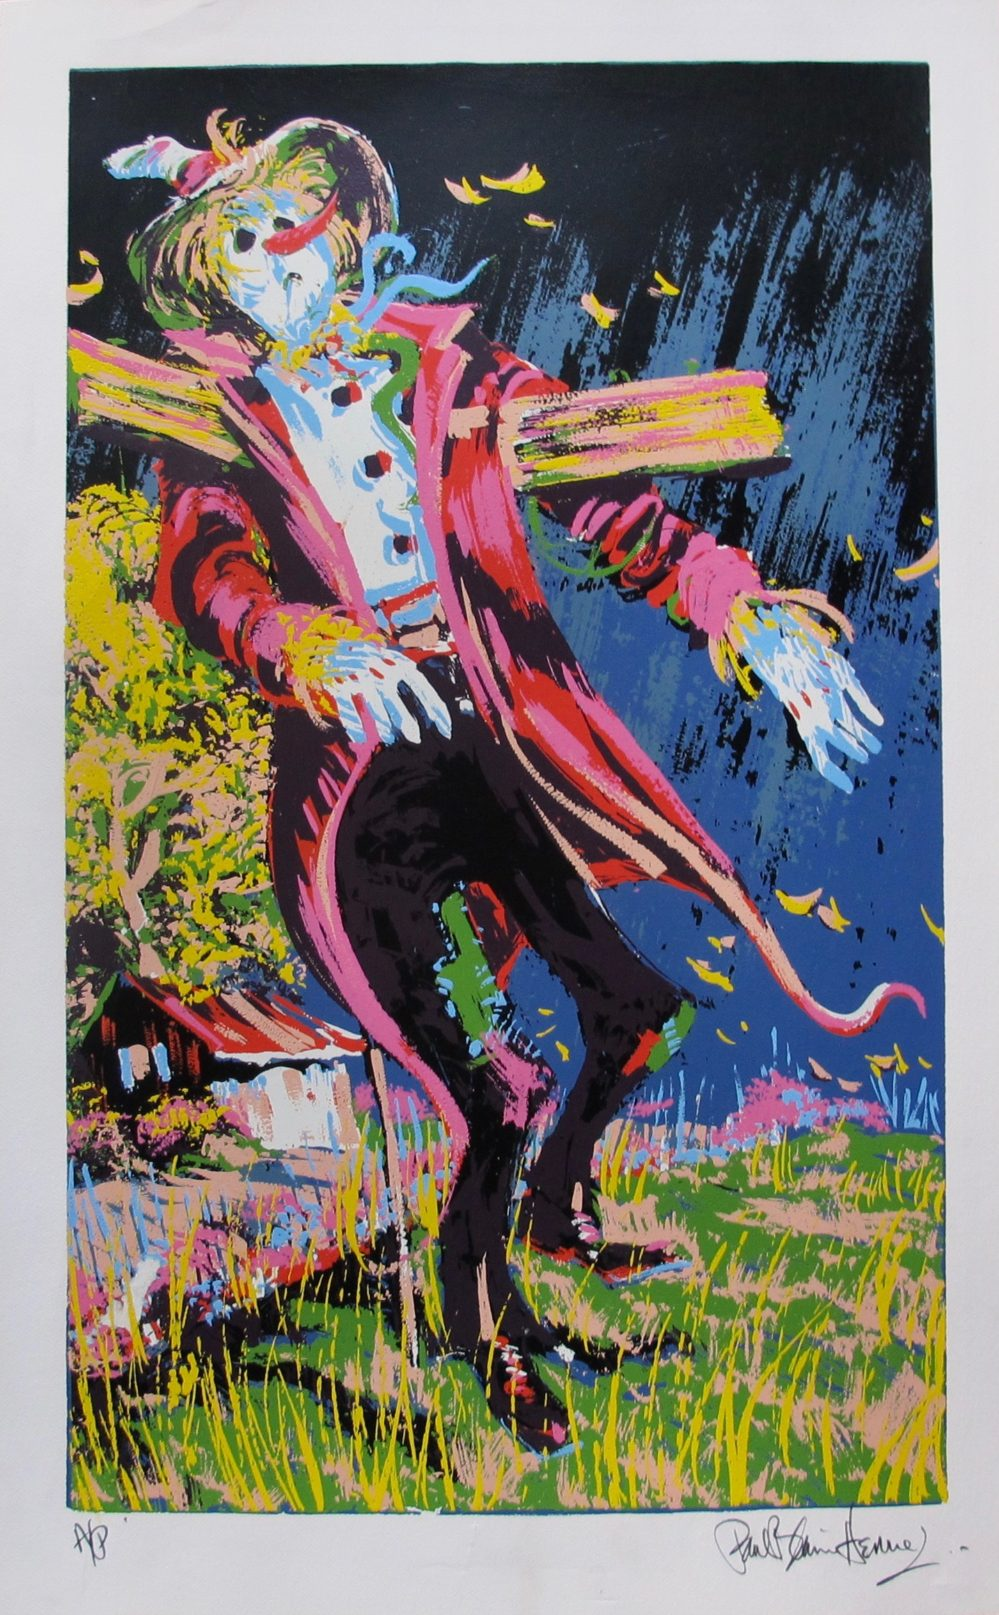 Paul Blaine Henrie SCARECROW Hand Signed Limited Edition Lithograph